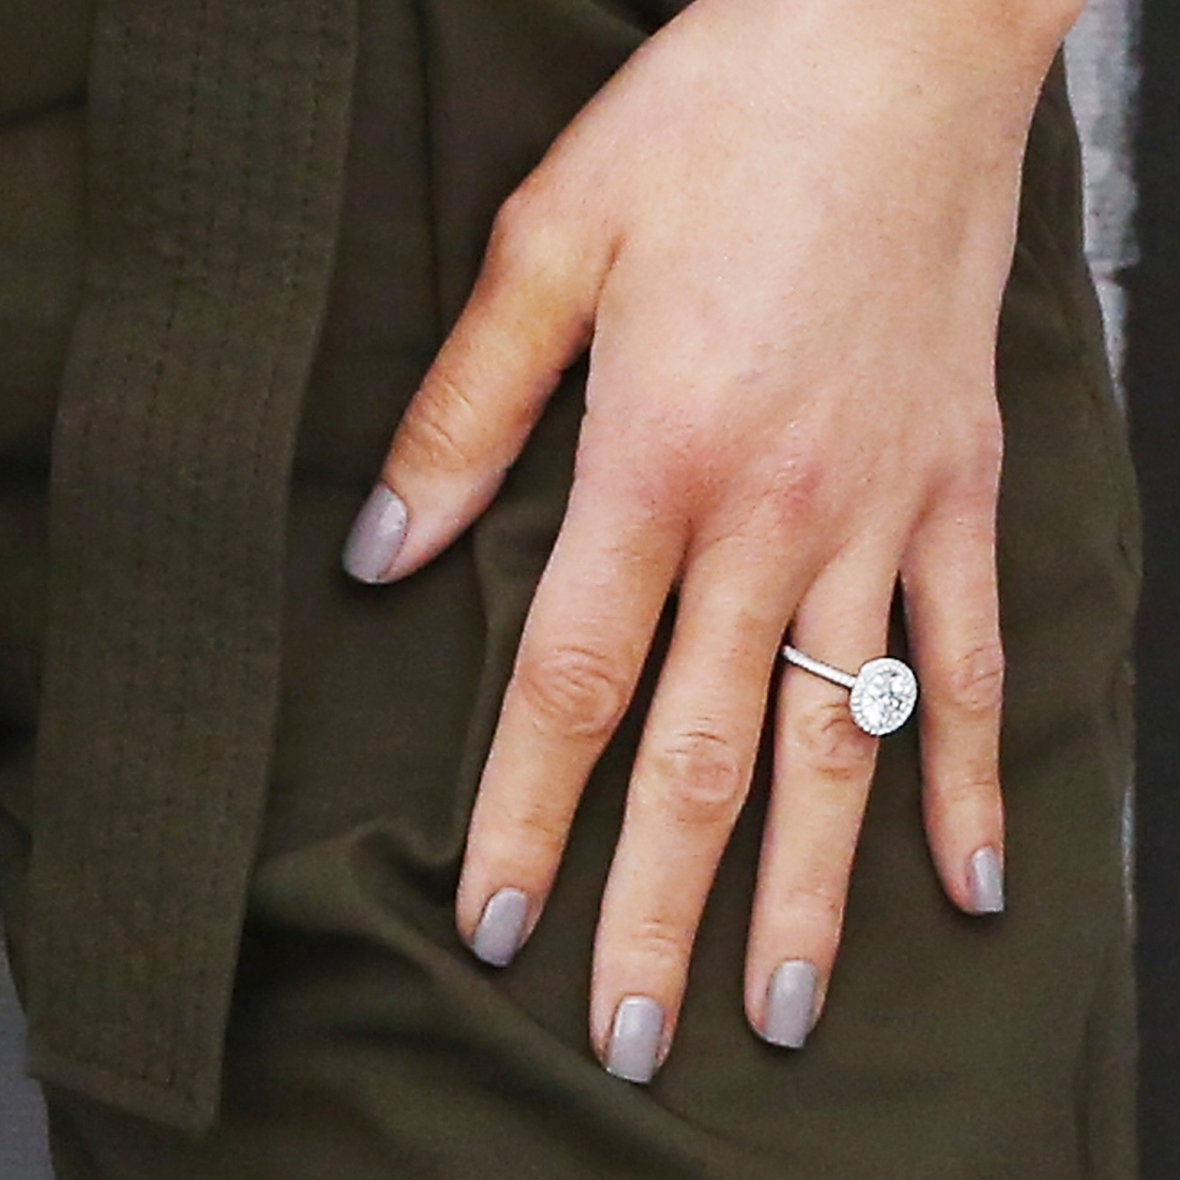 maria menounos engagement ring getty images